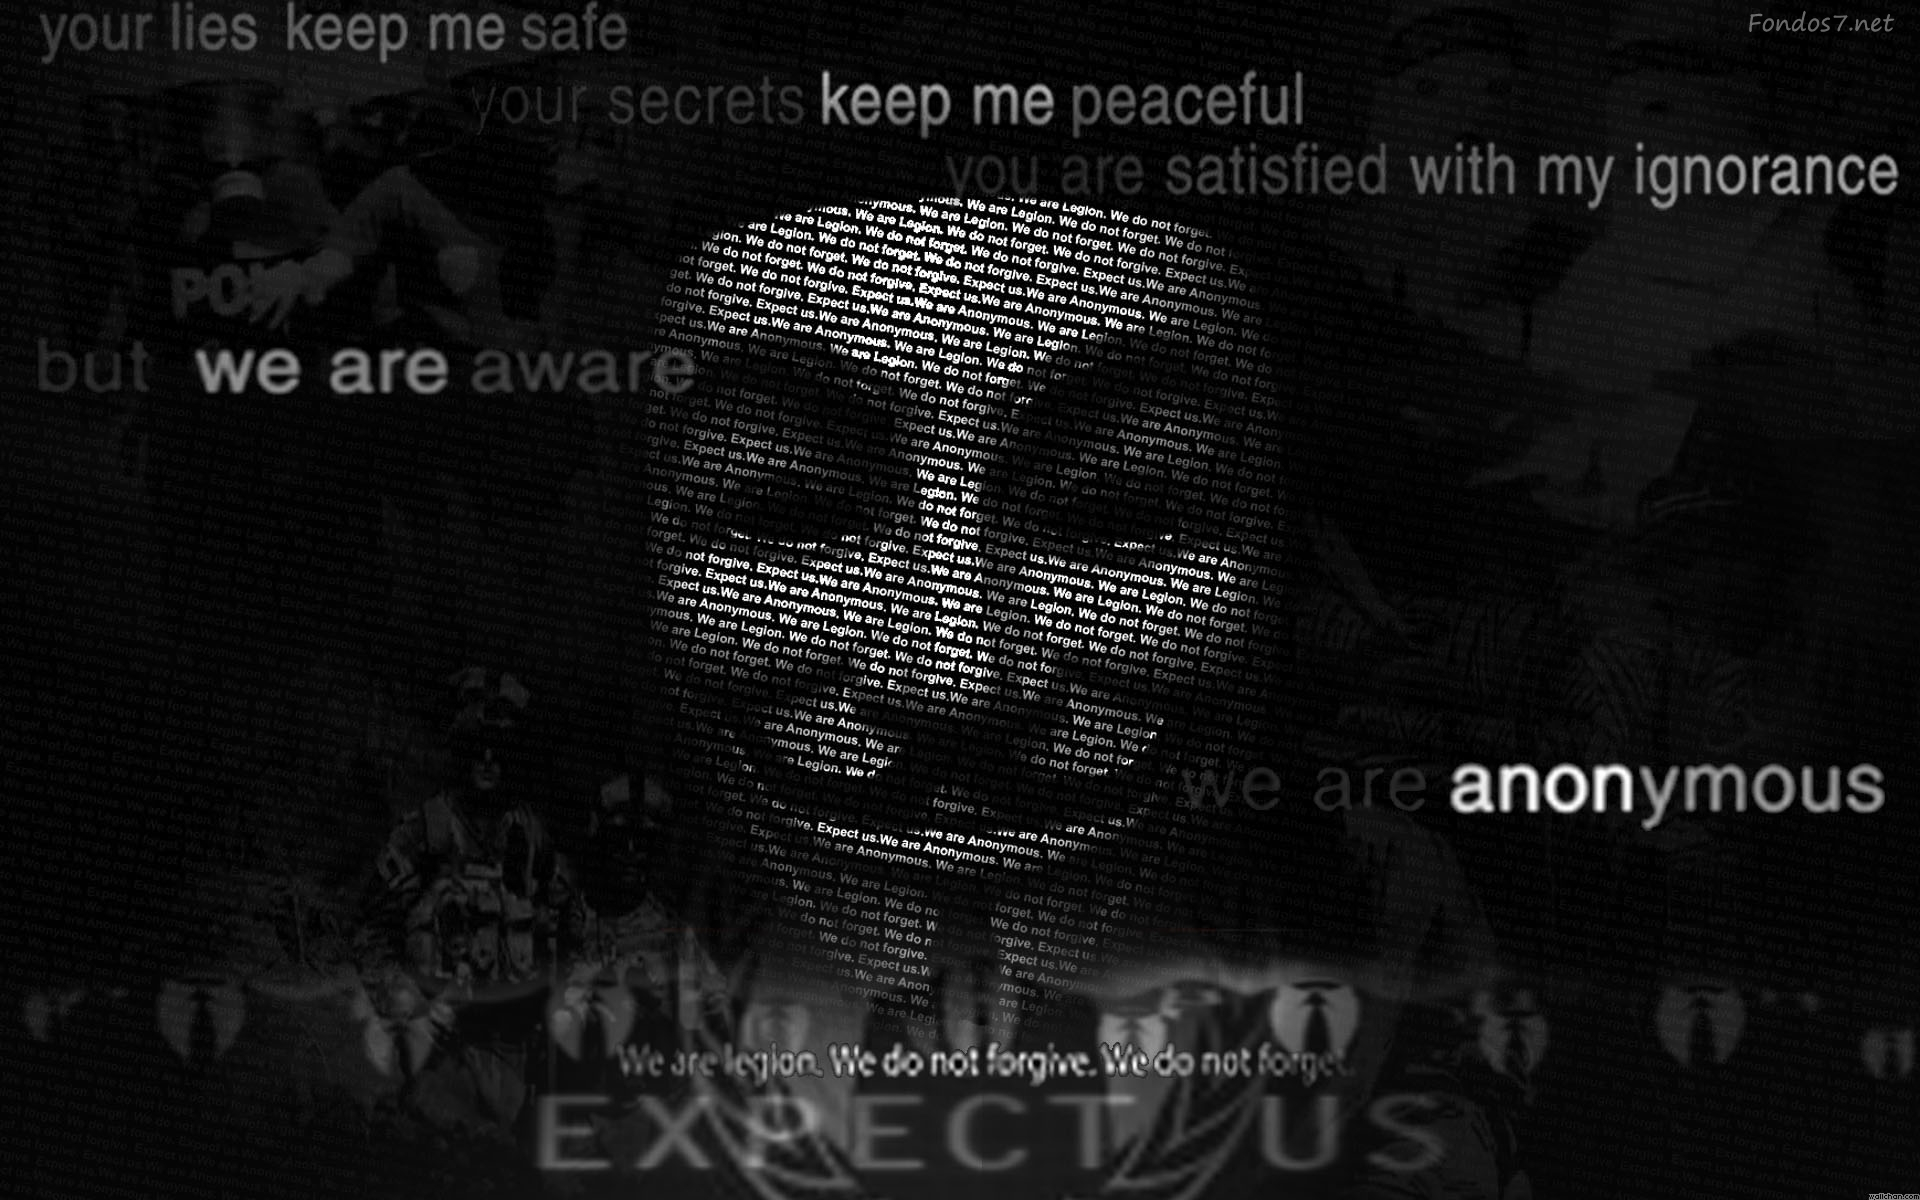 Descargar Fondos de pantalla anonymous hacking hd widescreen Gratis 1920x1200